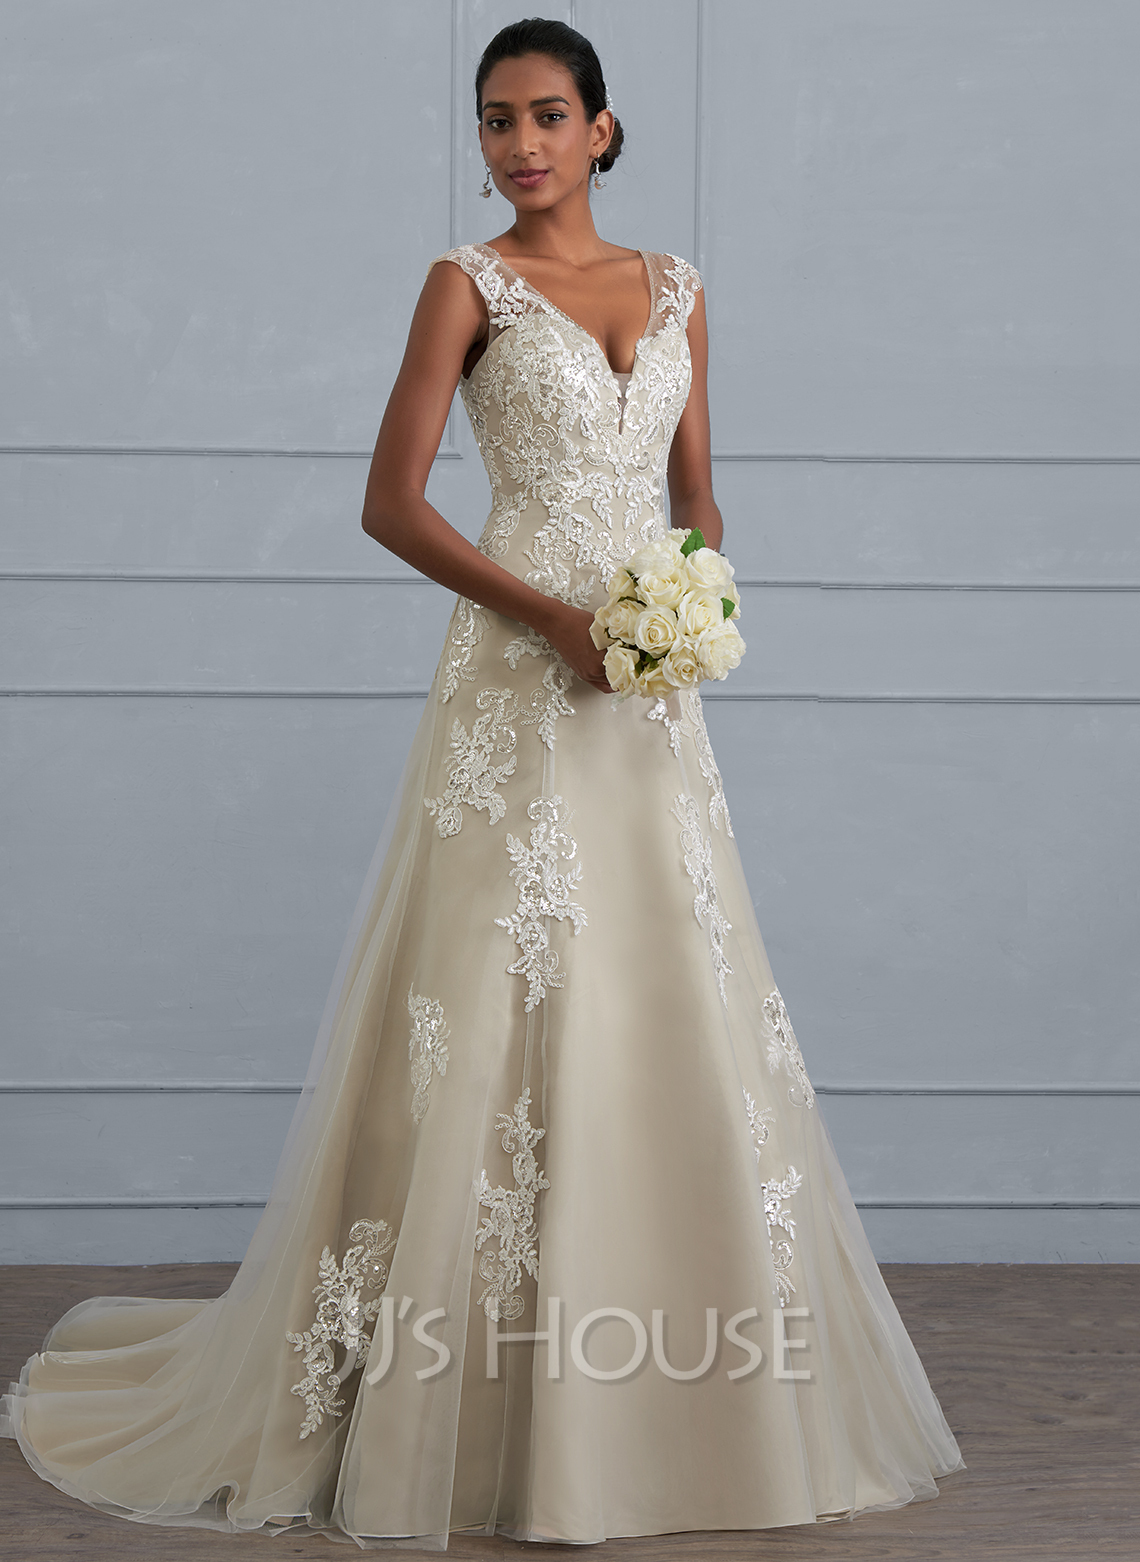 1b90e95959f62 A-Line/Princess V-neck Court Train Tulle Lace Wedding Dress With Beading.  Loading zoom